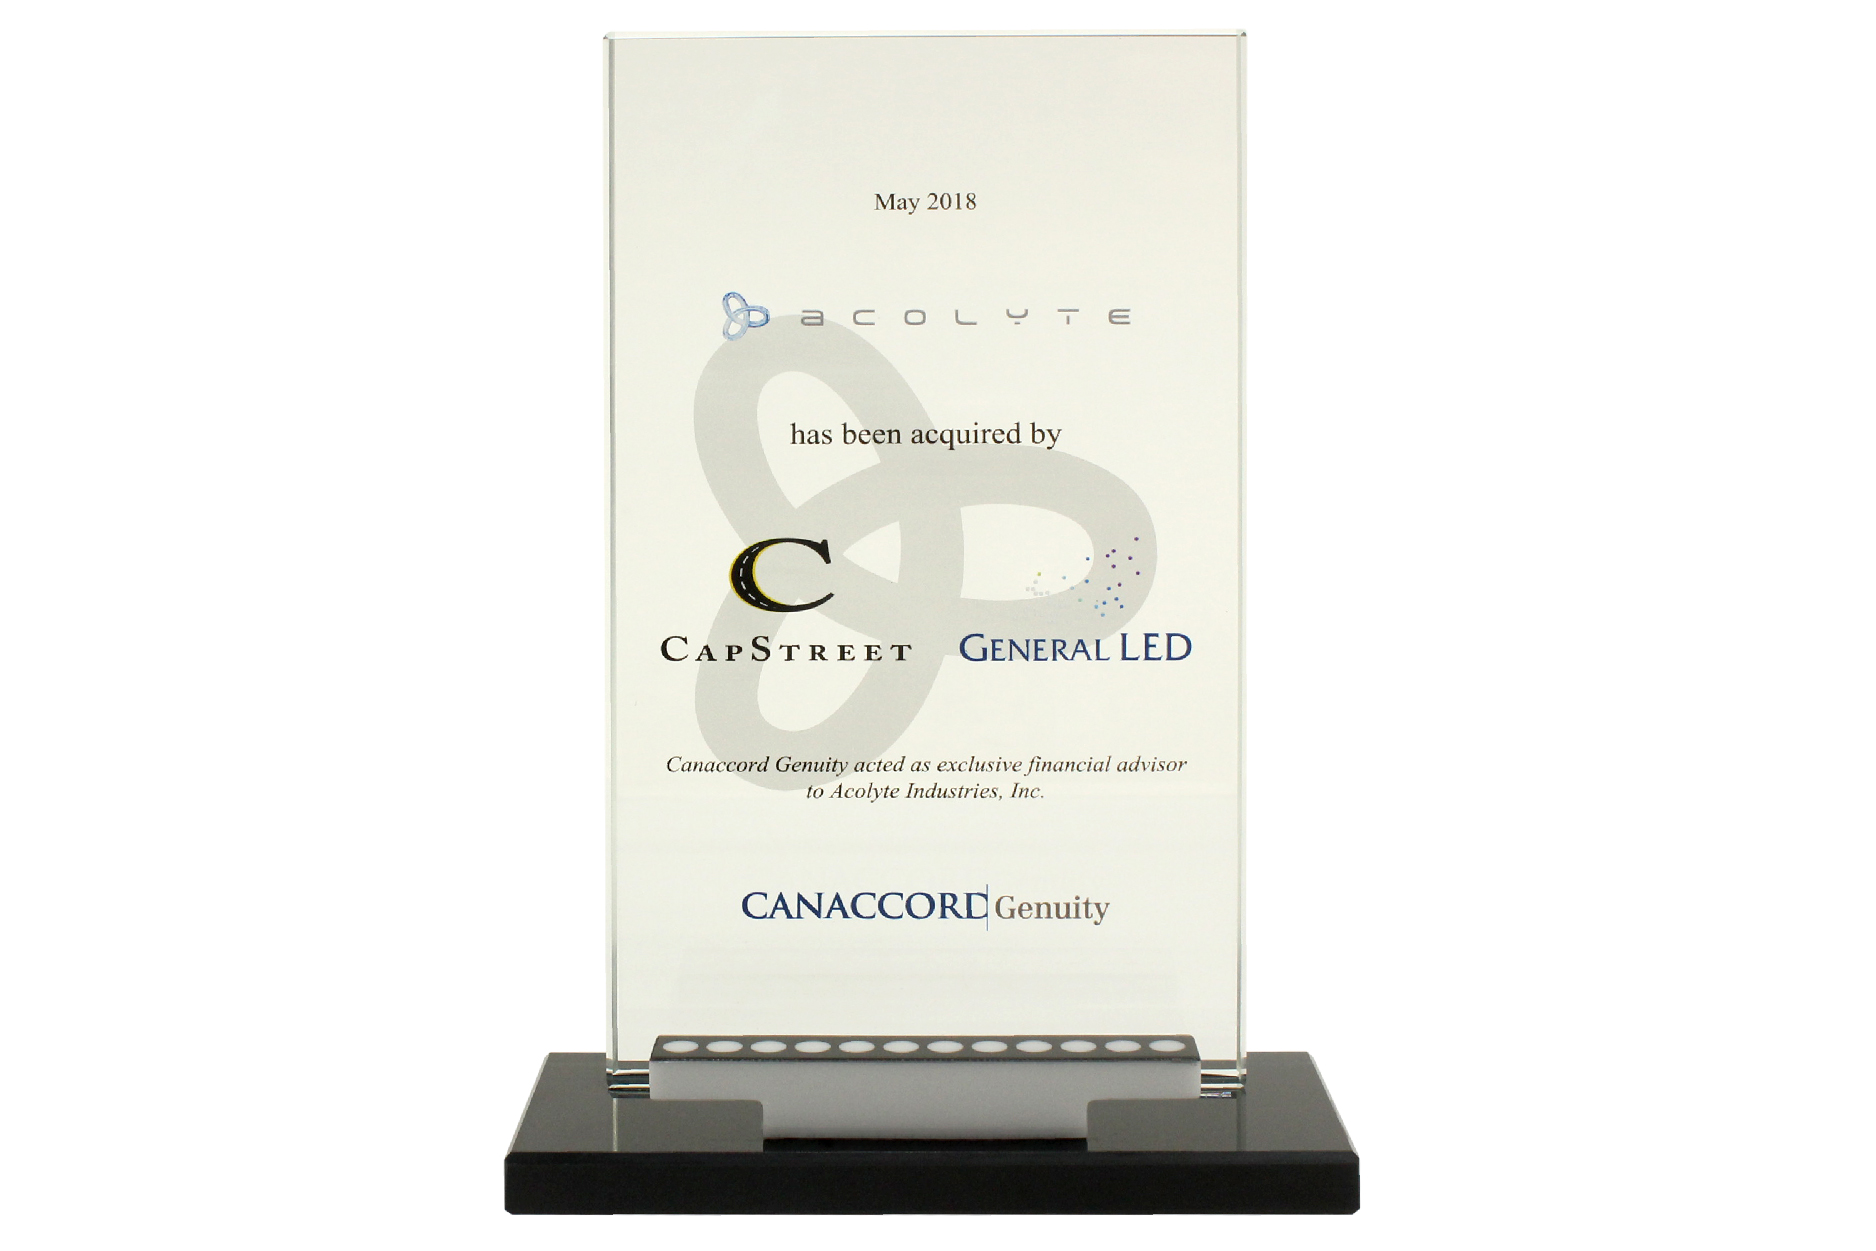 Custom deal toy with logos printed on crystal plaque and a model of LED product.